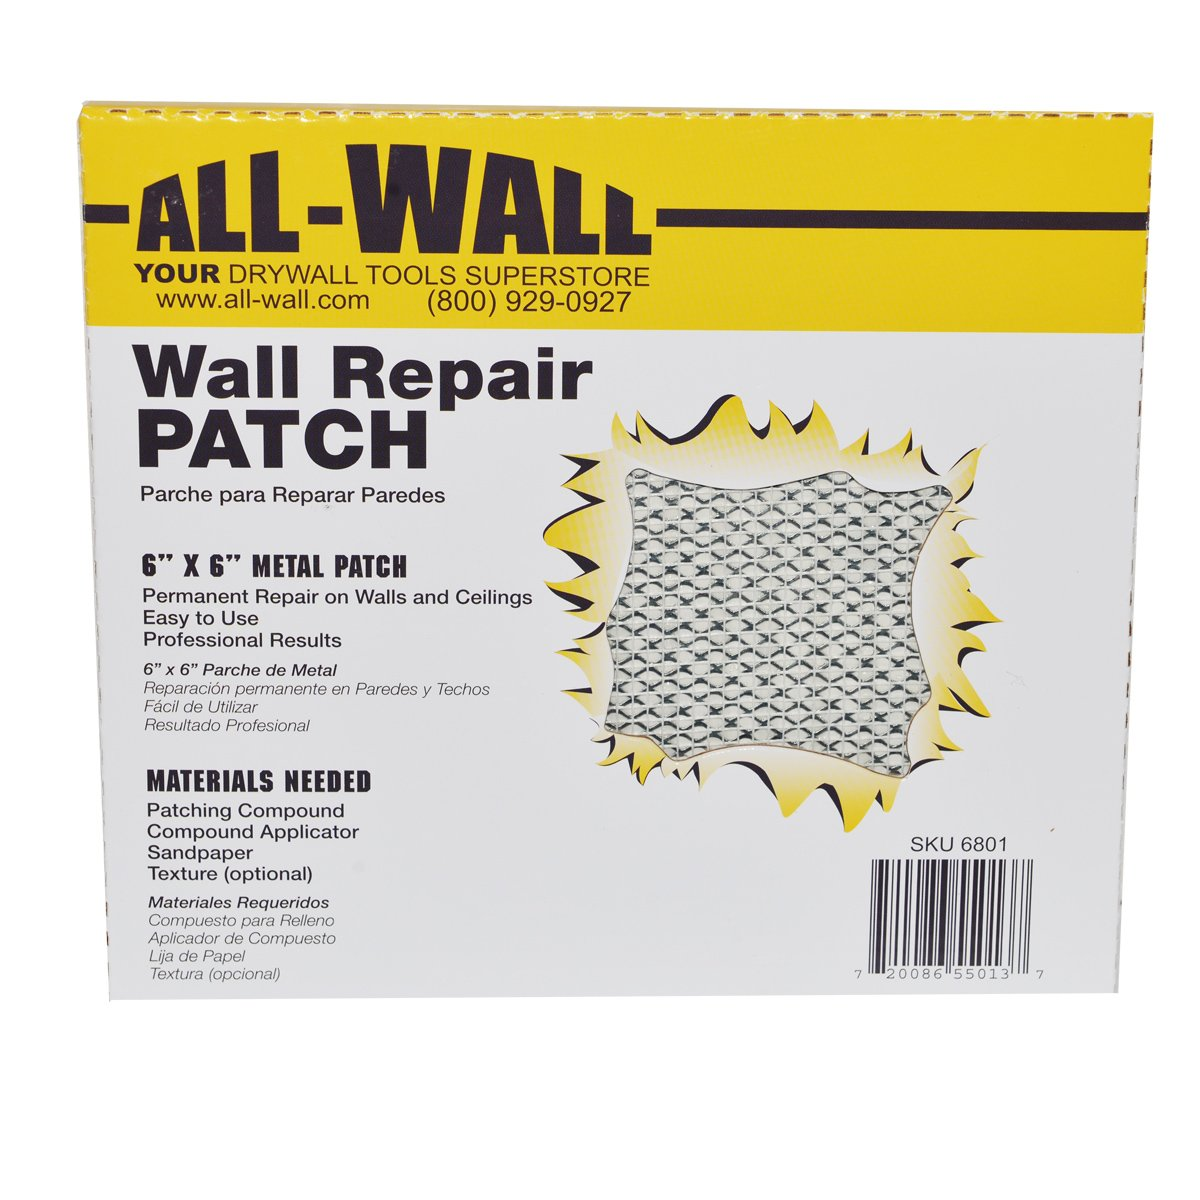 All-Wall Drywall Repair Patches - Metal Aluminum Stick-On Adhesive Wall Patch (6'' x 6'' 10-Pack)